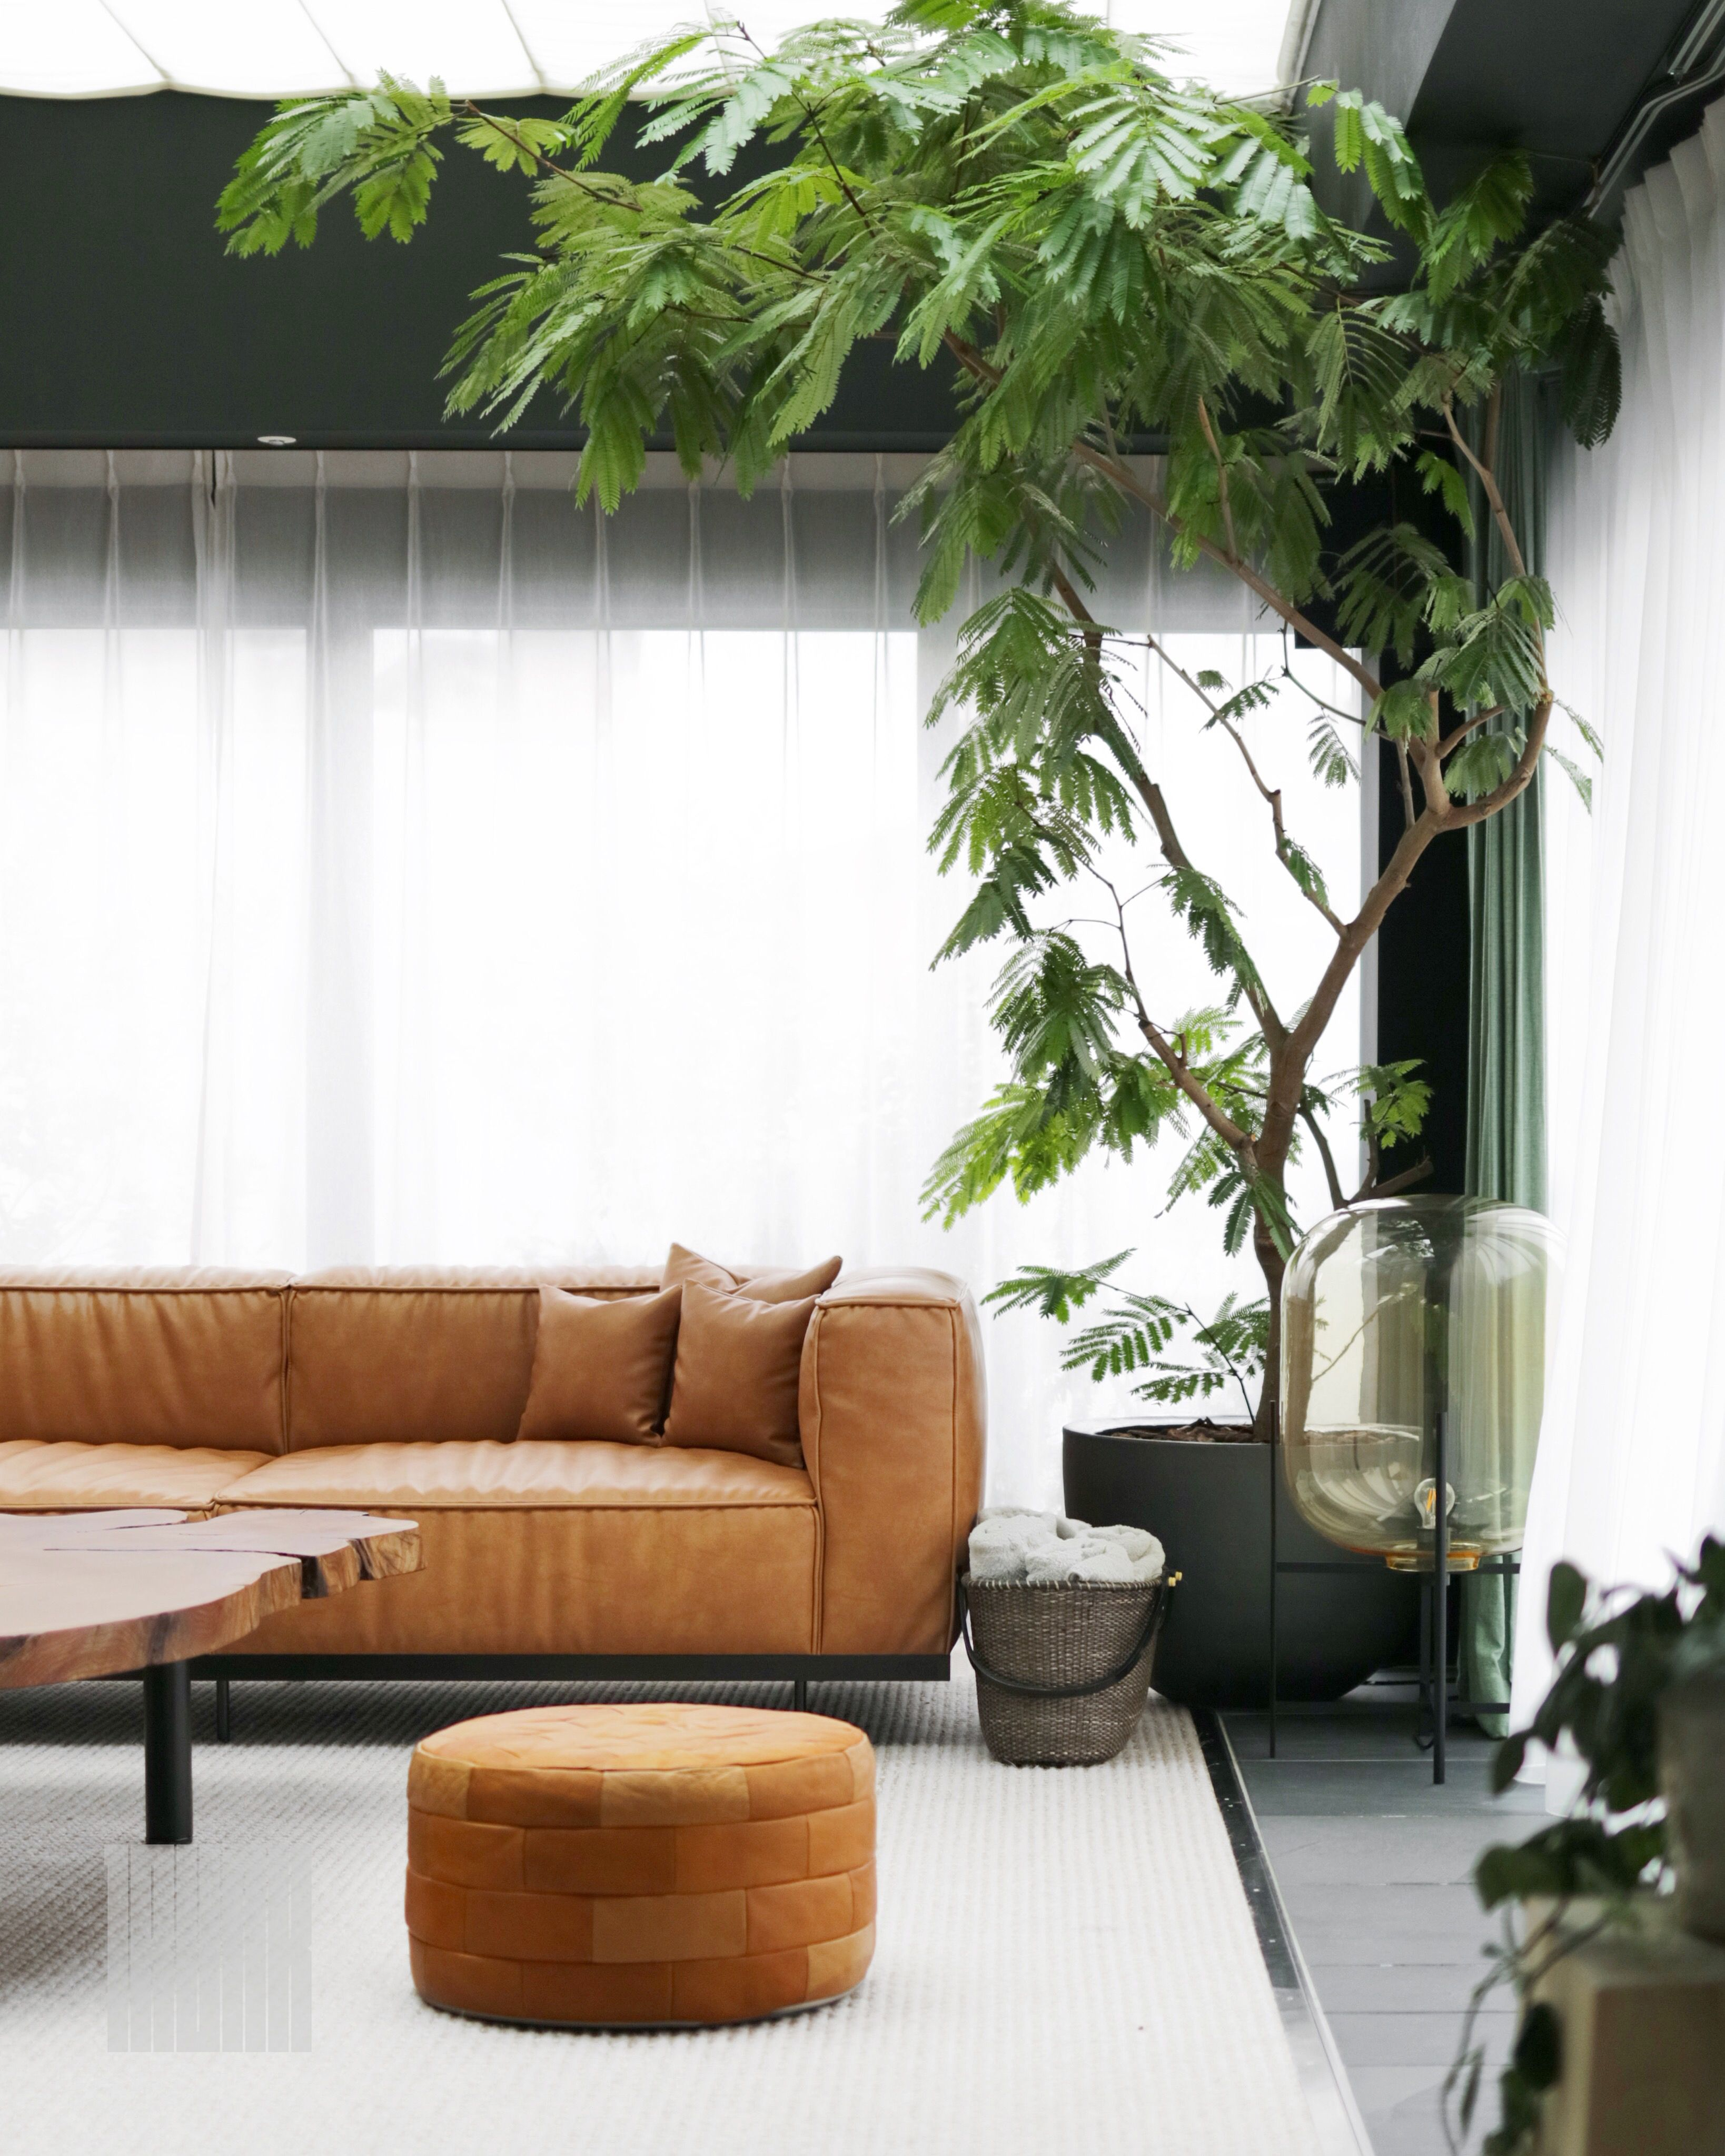 TRUNK(HOTEL) boutique hotel in Tokyo, Japan. A view into the living ...